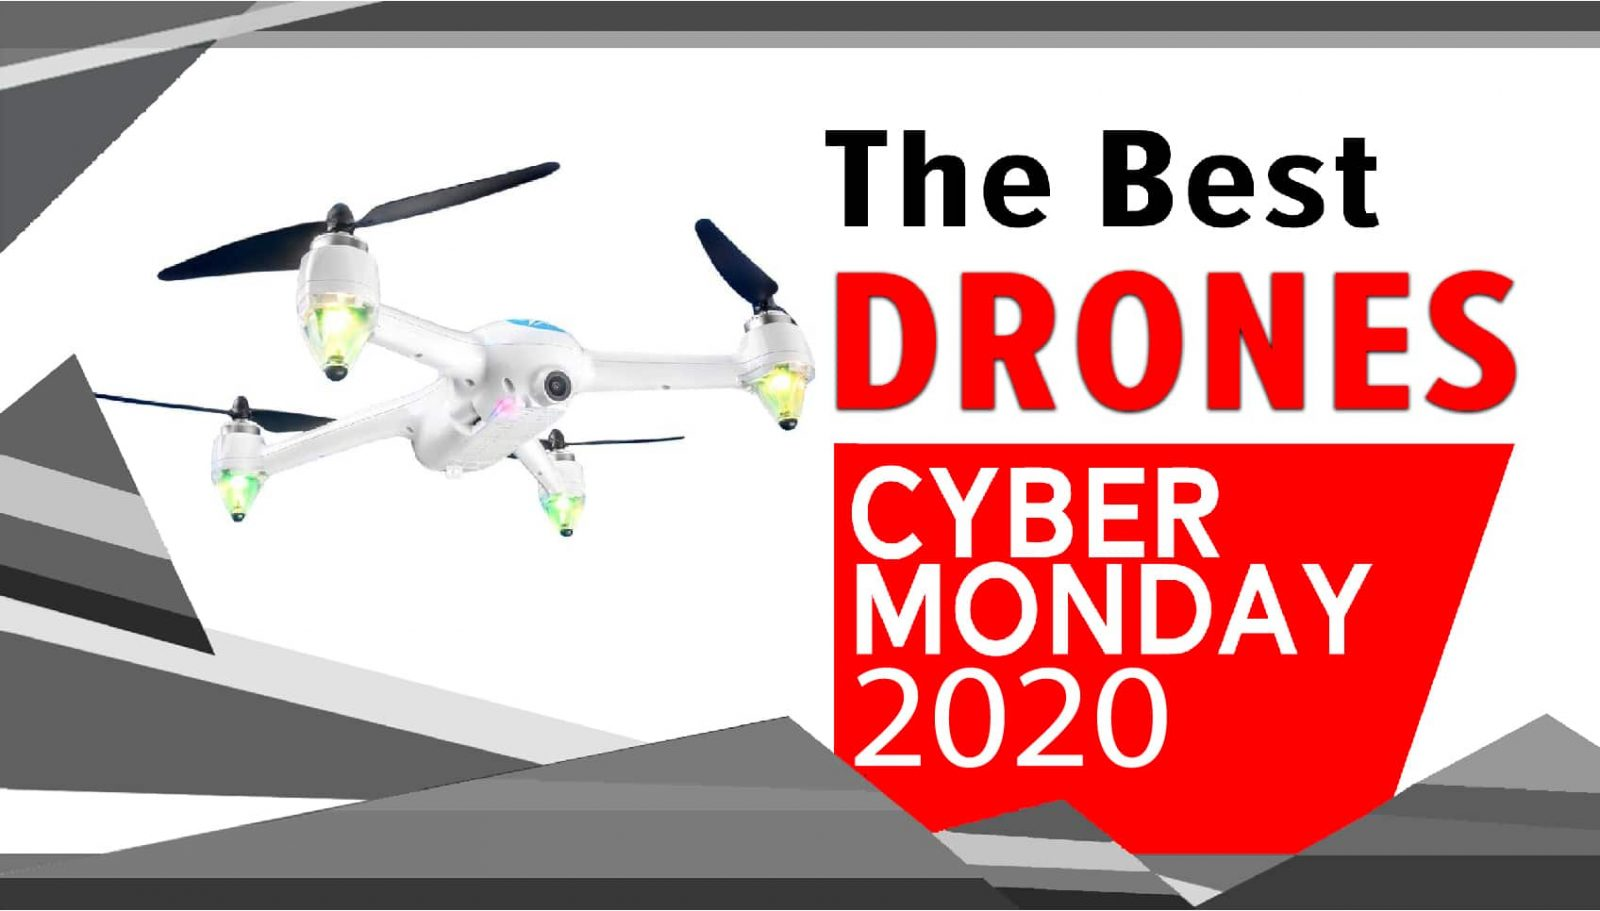 drones for monday 2020